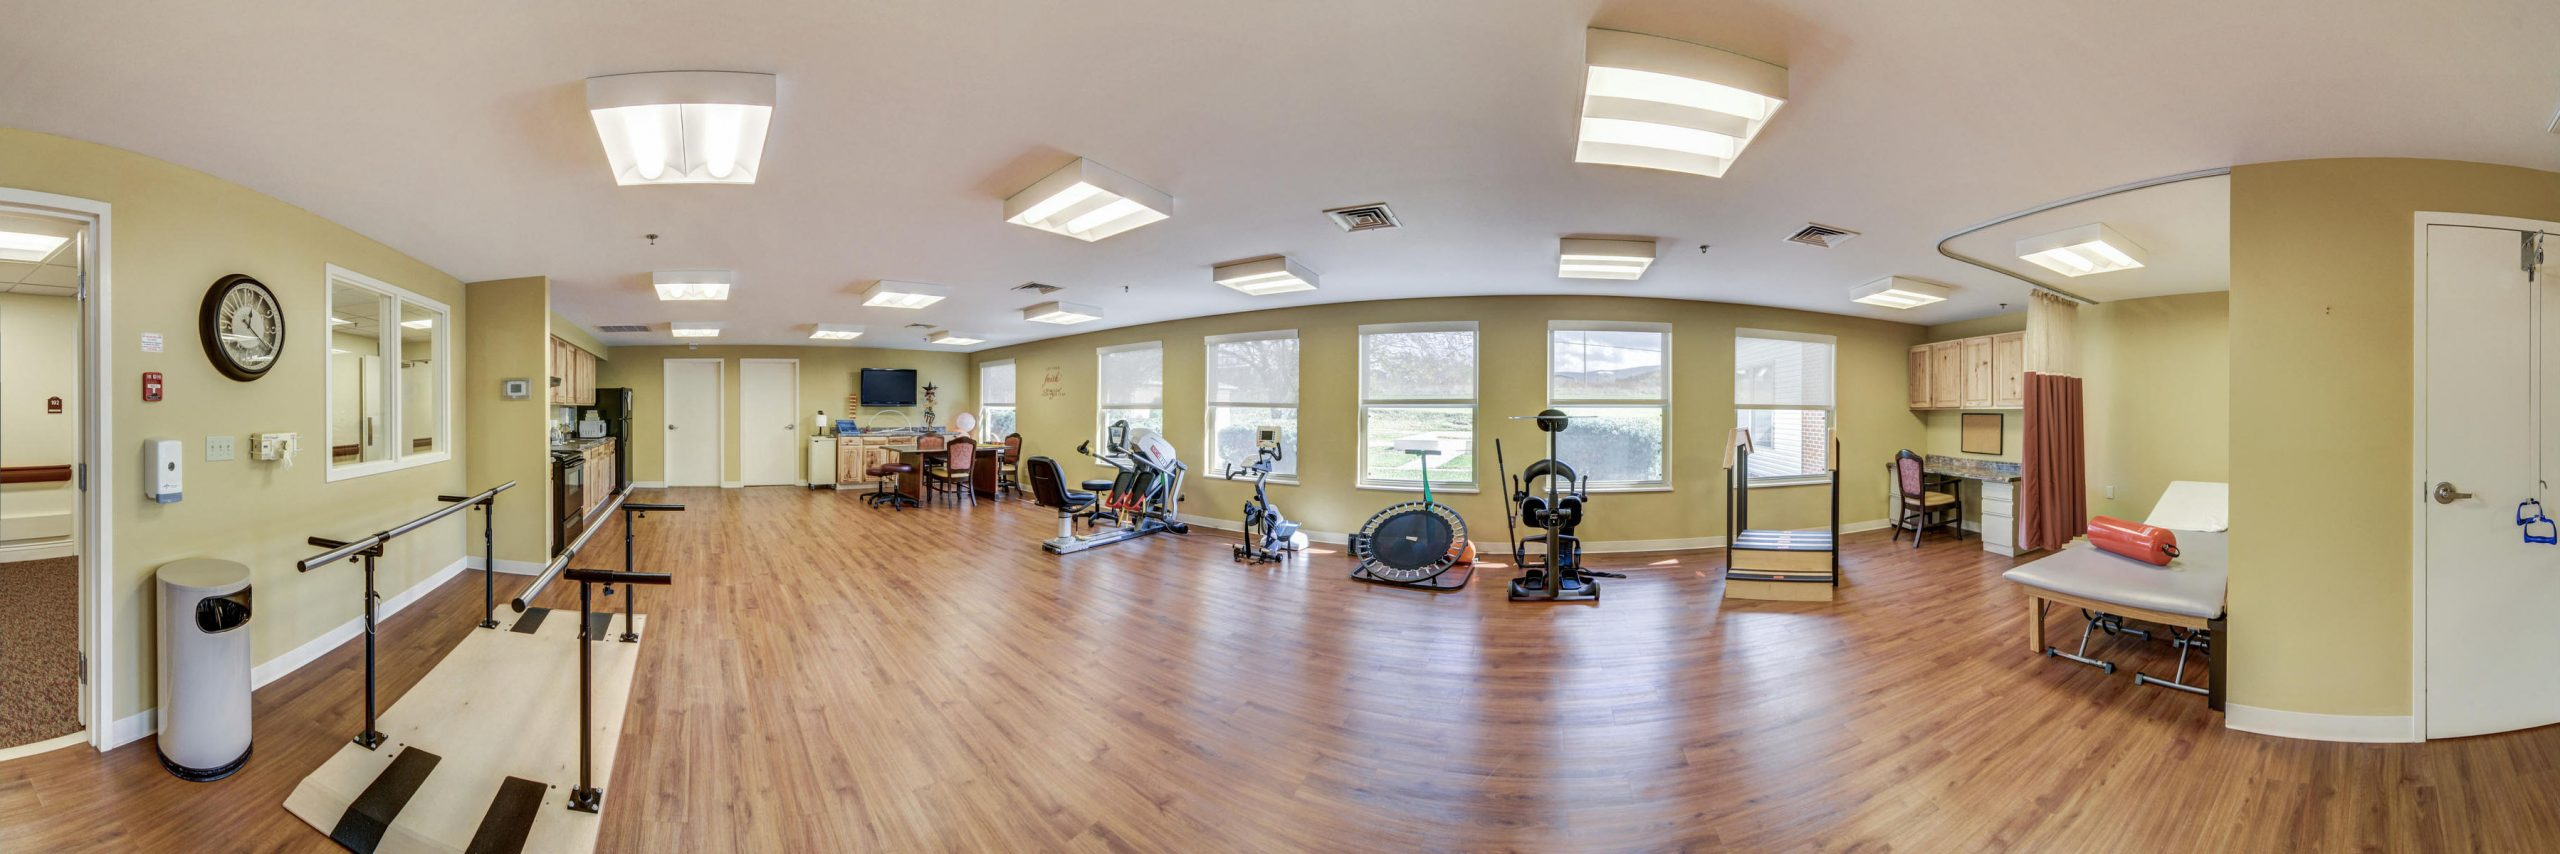 Panoramic view of Stonerise Lindside Therapy and Rehabilitation room with equipment